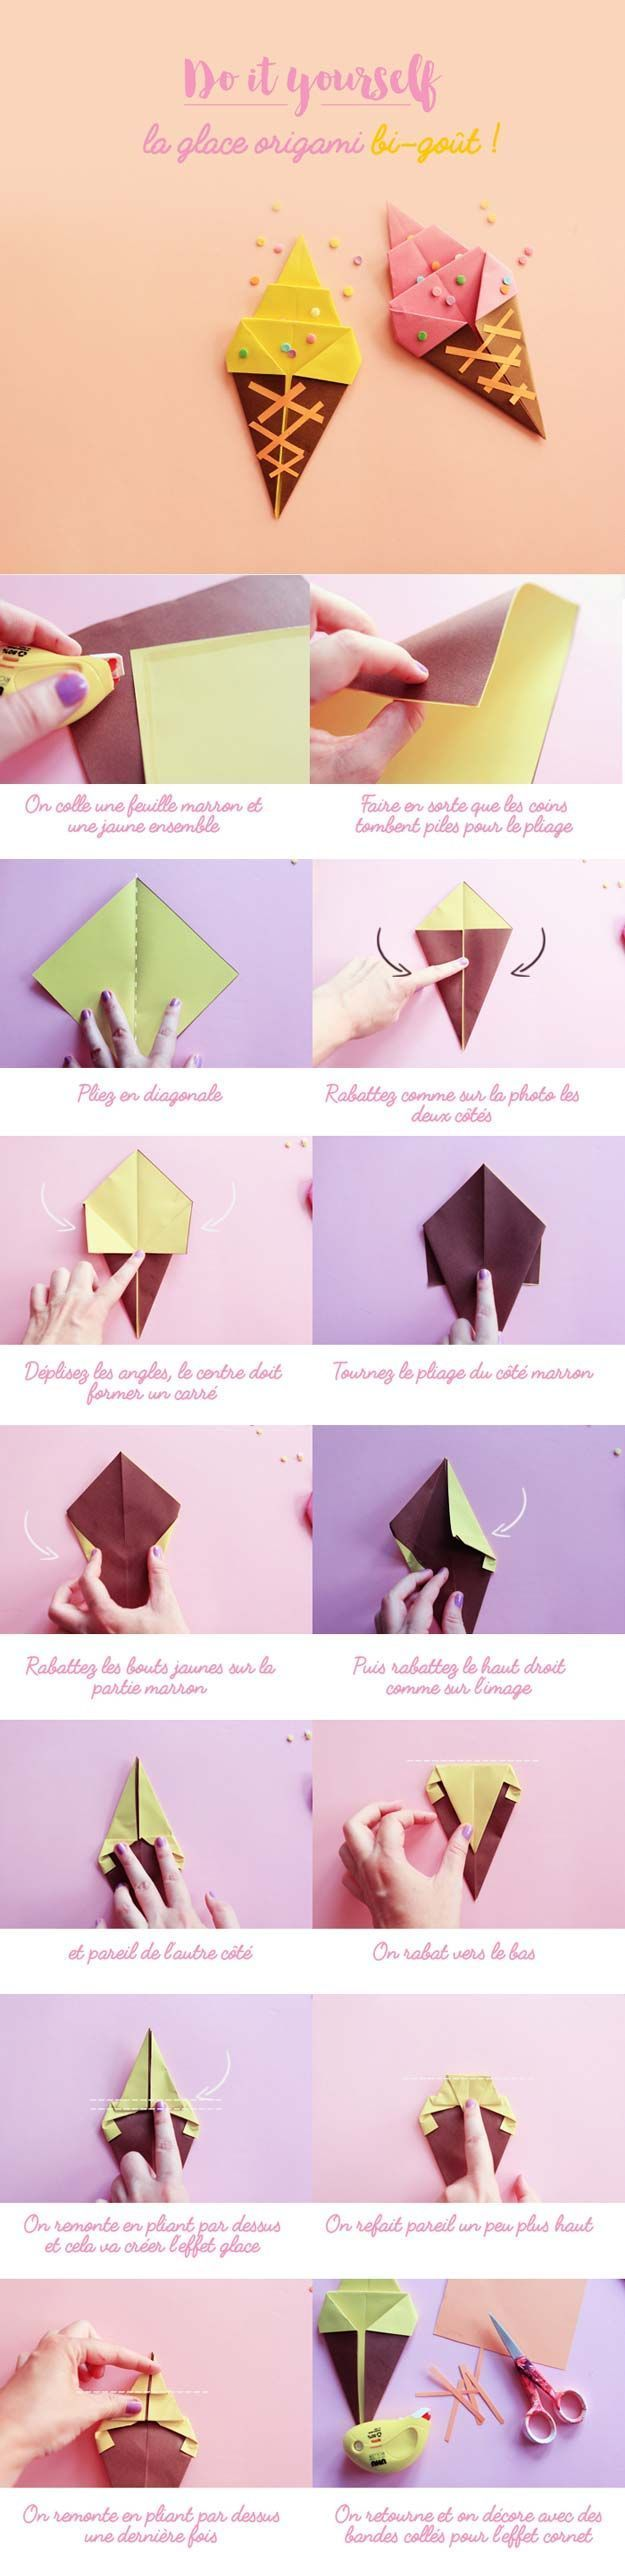 Best Origami Tutorials - Ice Cream Origami- Easy DIY Origami Tutorial Projects for With Instructions for Flowers, Dog, Gift Box, Star, Owl, Buttlerfly, Heart and Bookmark, Animals - Fun Paper Crafts for Teens, Kids and Adults http://diyprojectsforteens.com/best-origami-tutorials #giftboxes